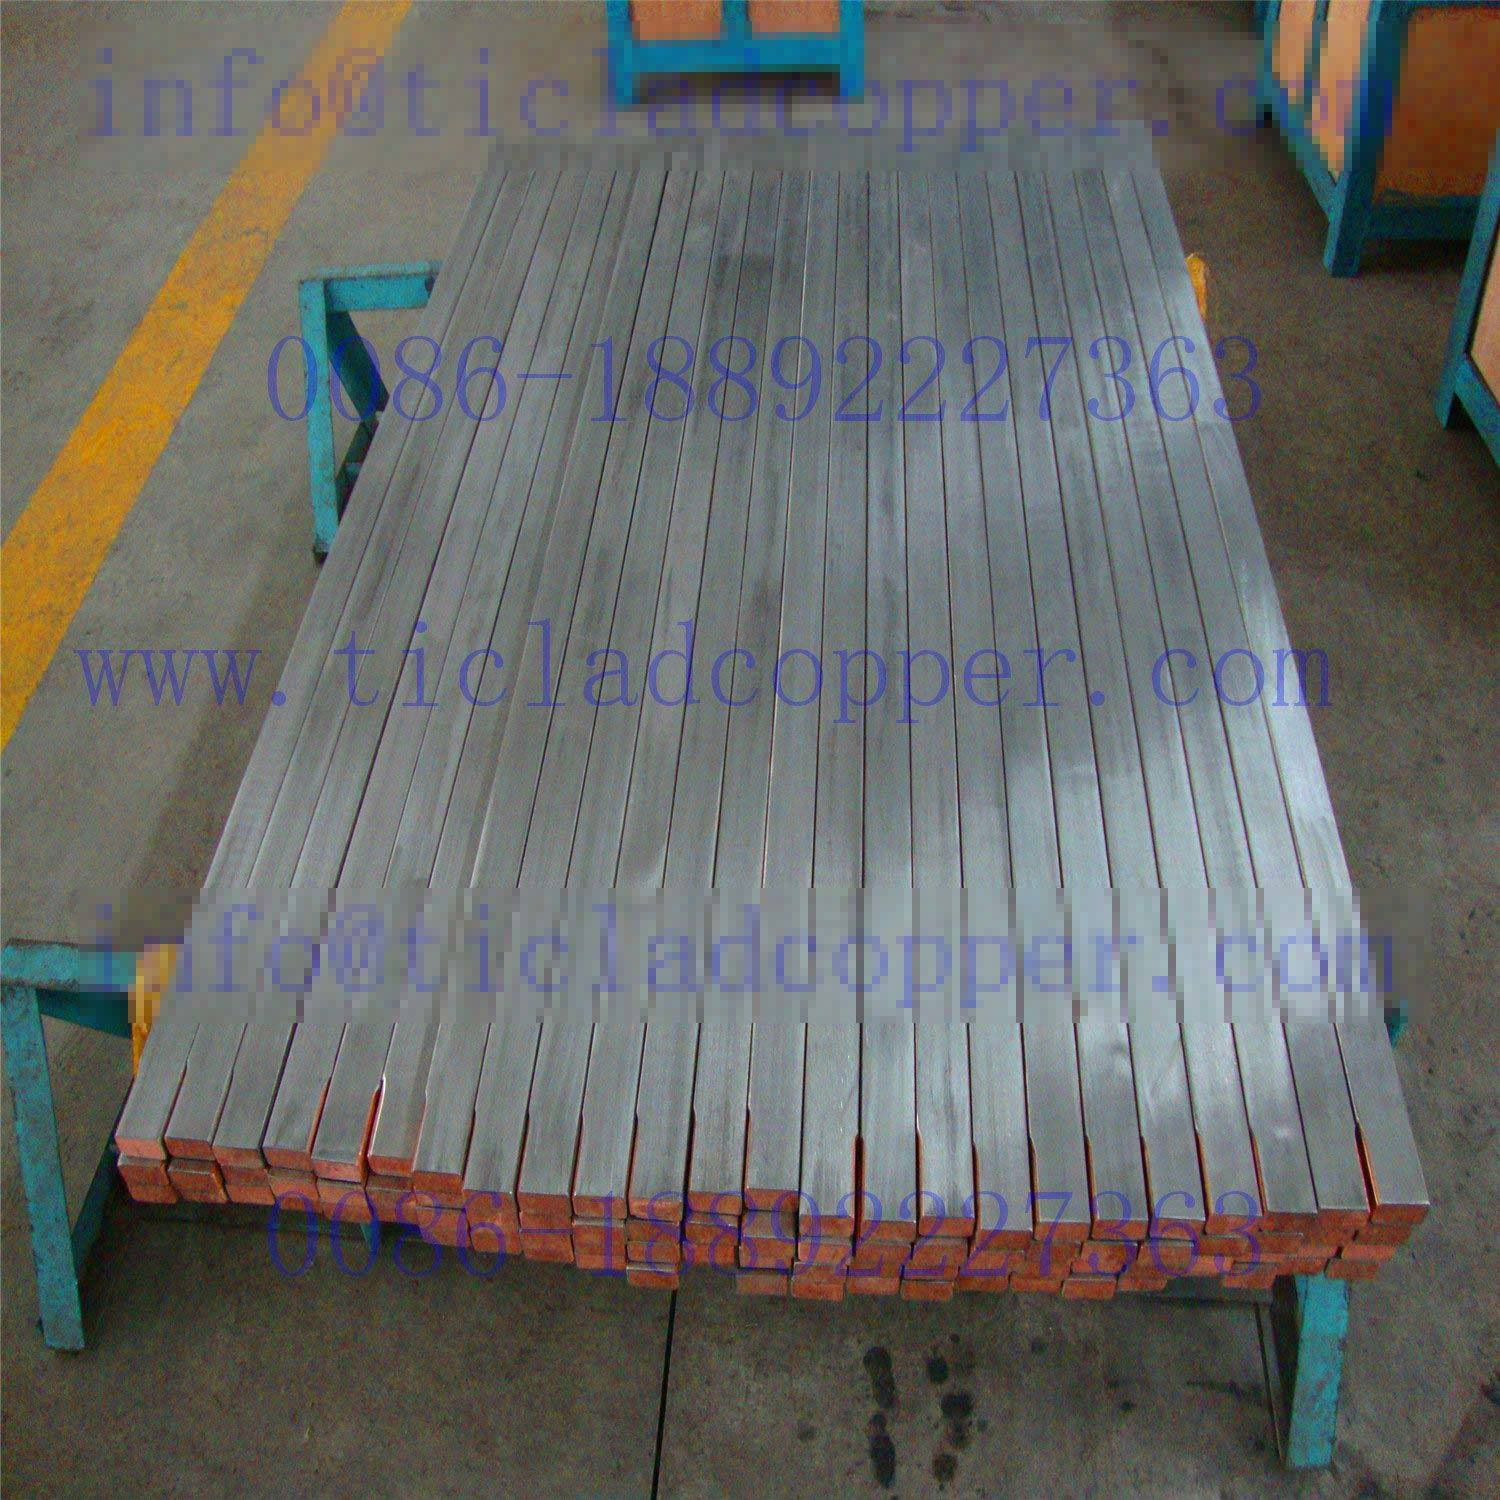 Ti Clad Copper Conductive Bus Bar Anode for Metallurgy Industry